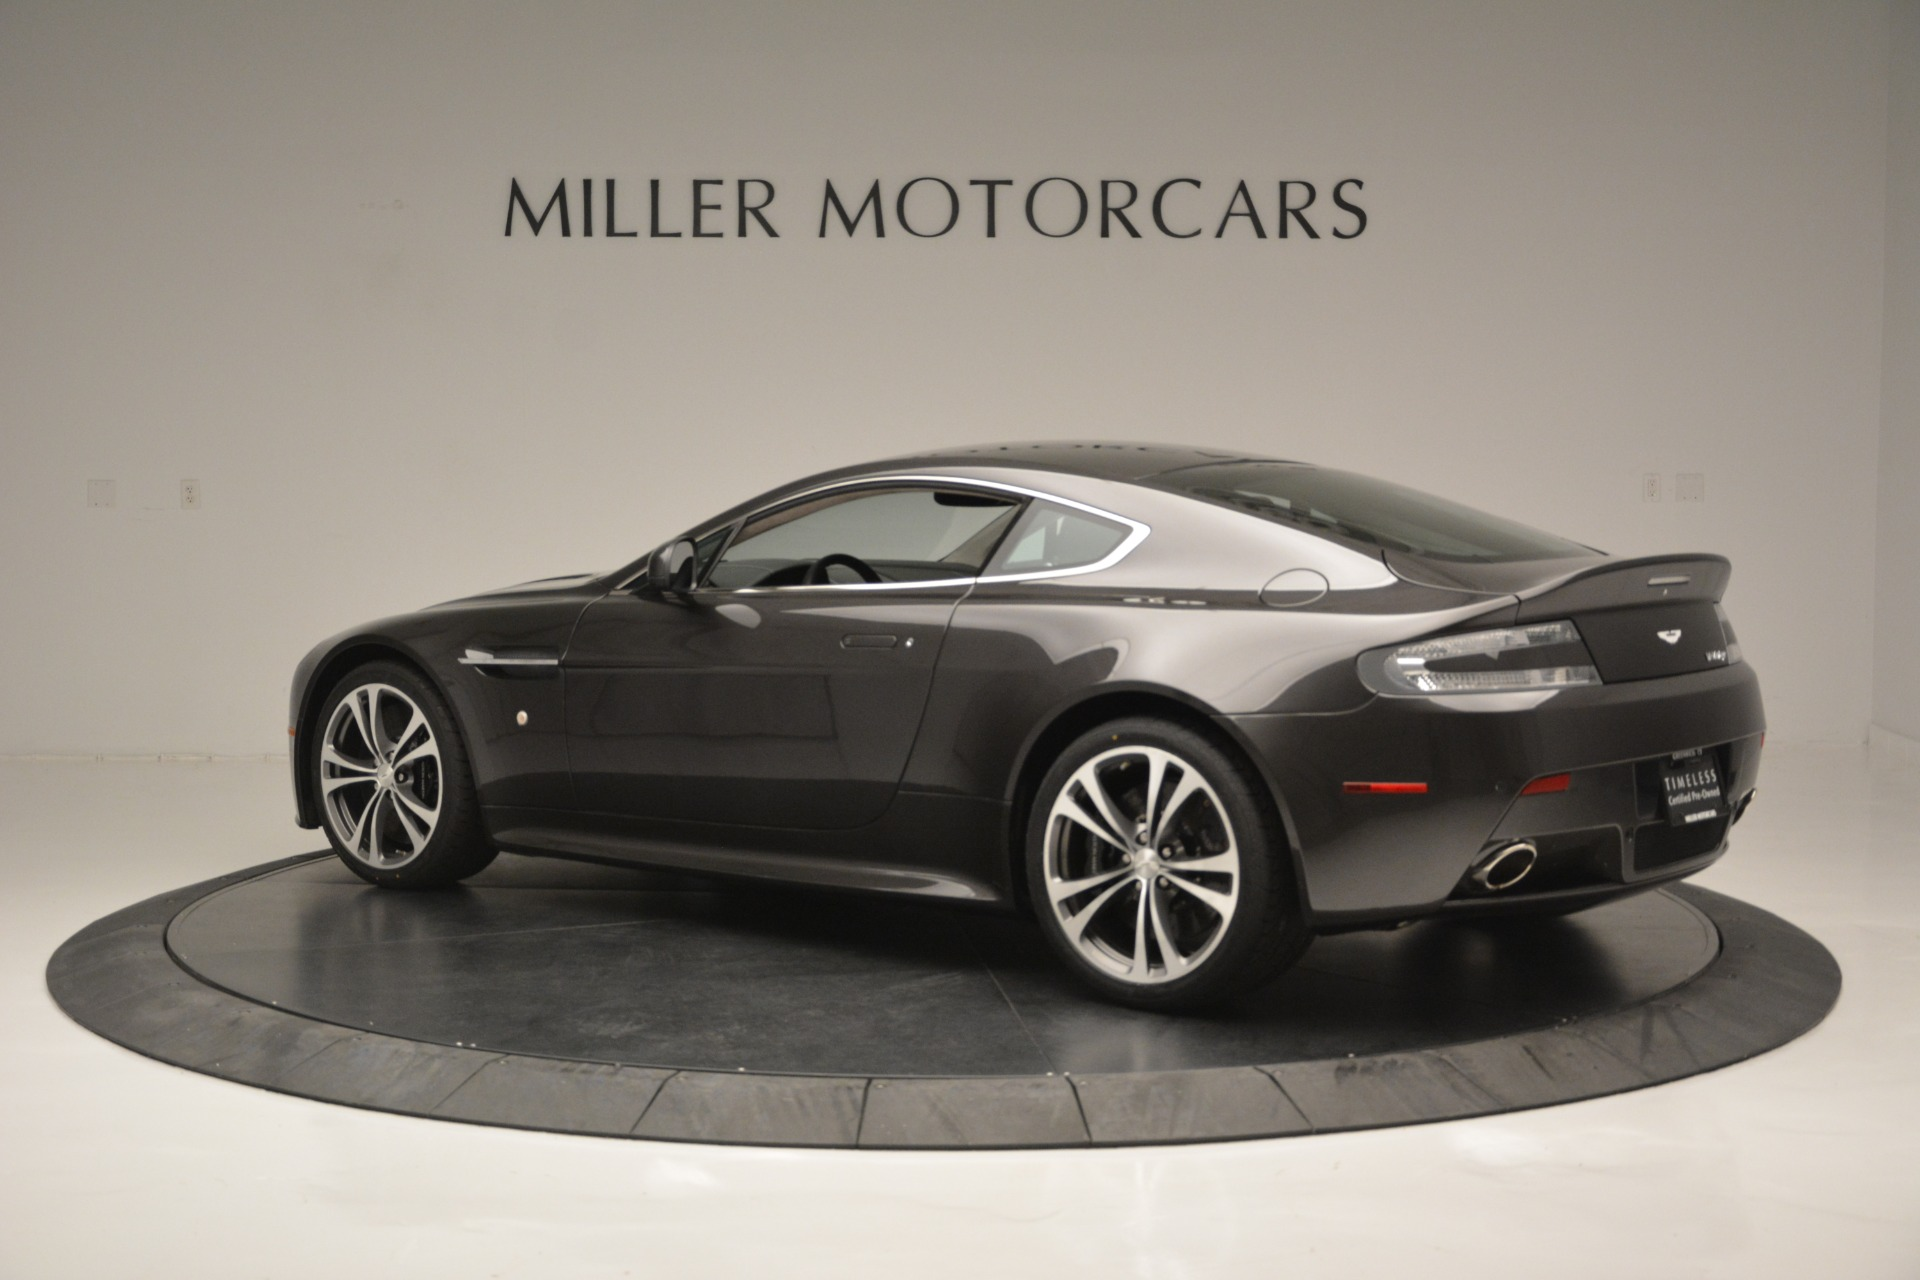 Used 2012 Aston Martin V12 Vantage Coupe For Sale In Westport, CT 2544_p4